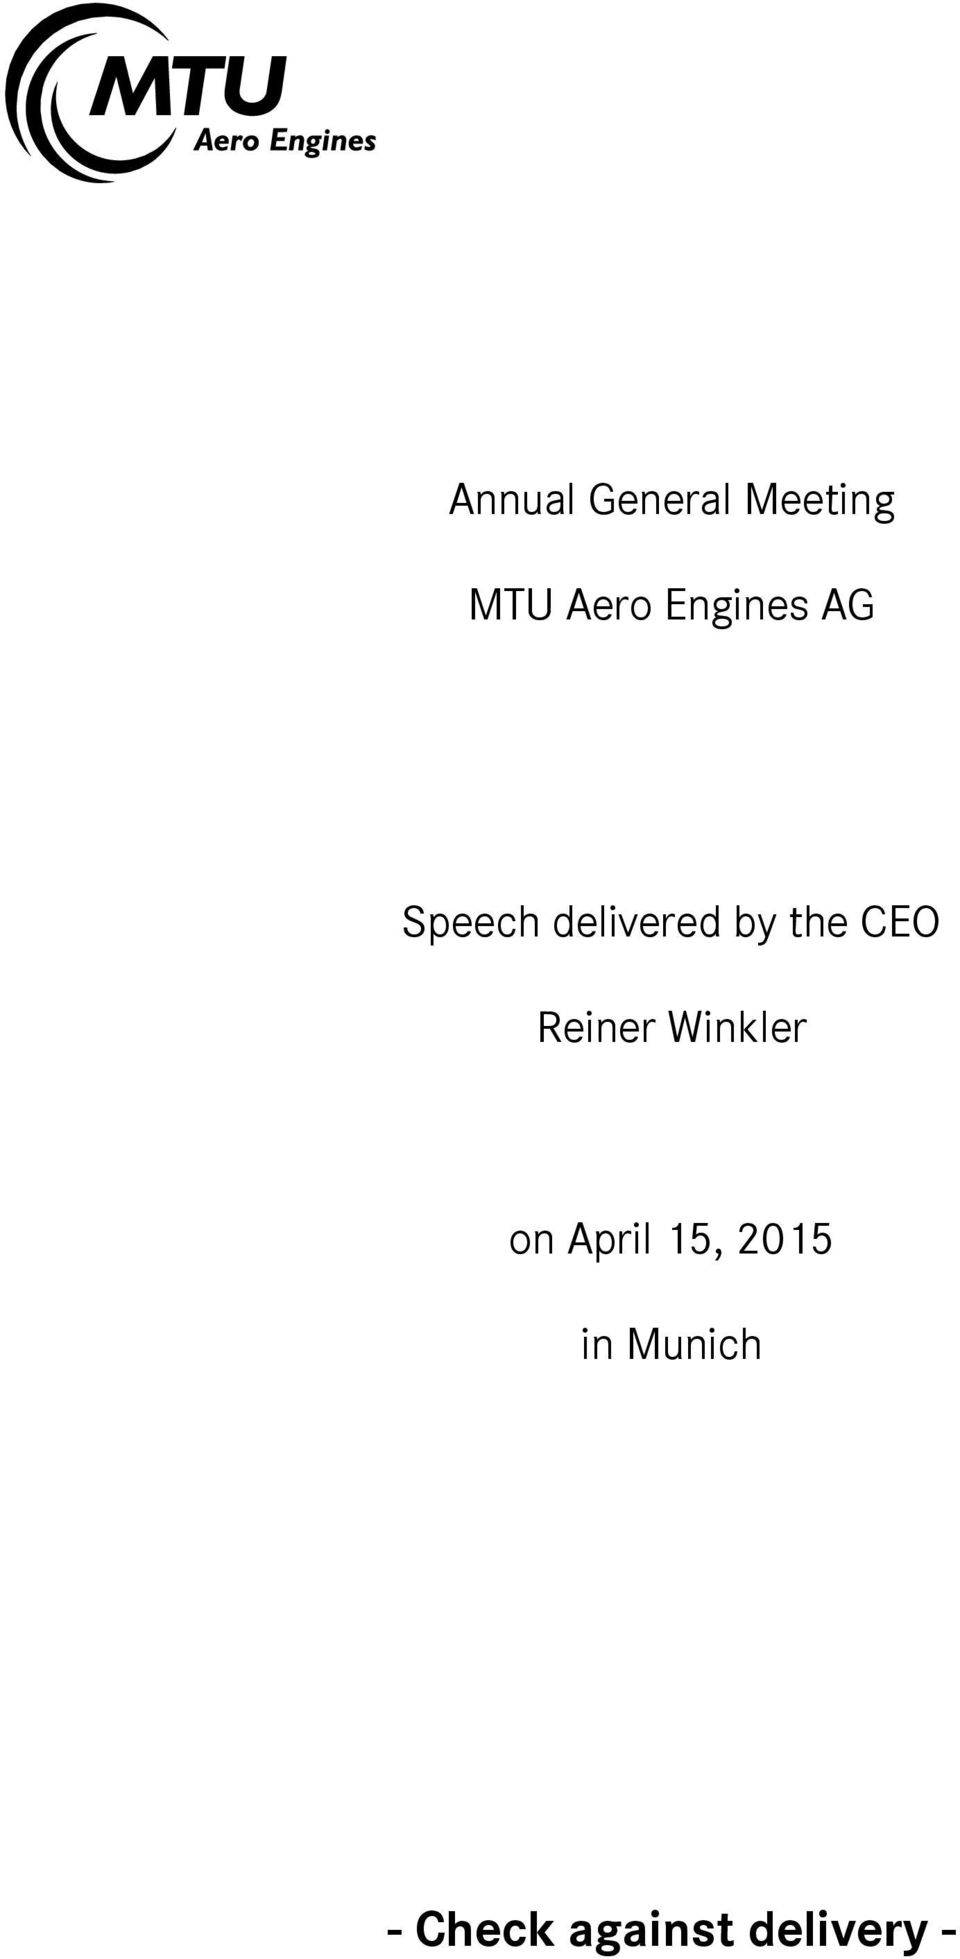 CEO Reiner Winkler on April 15,